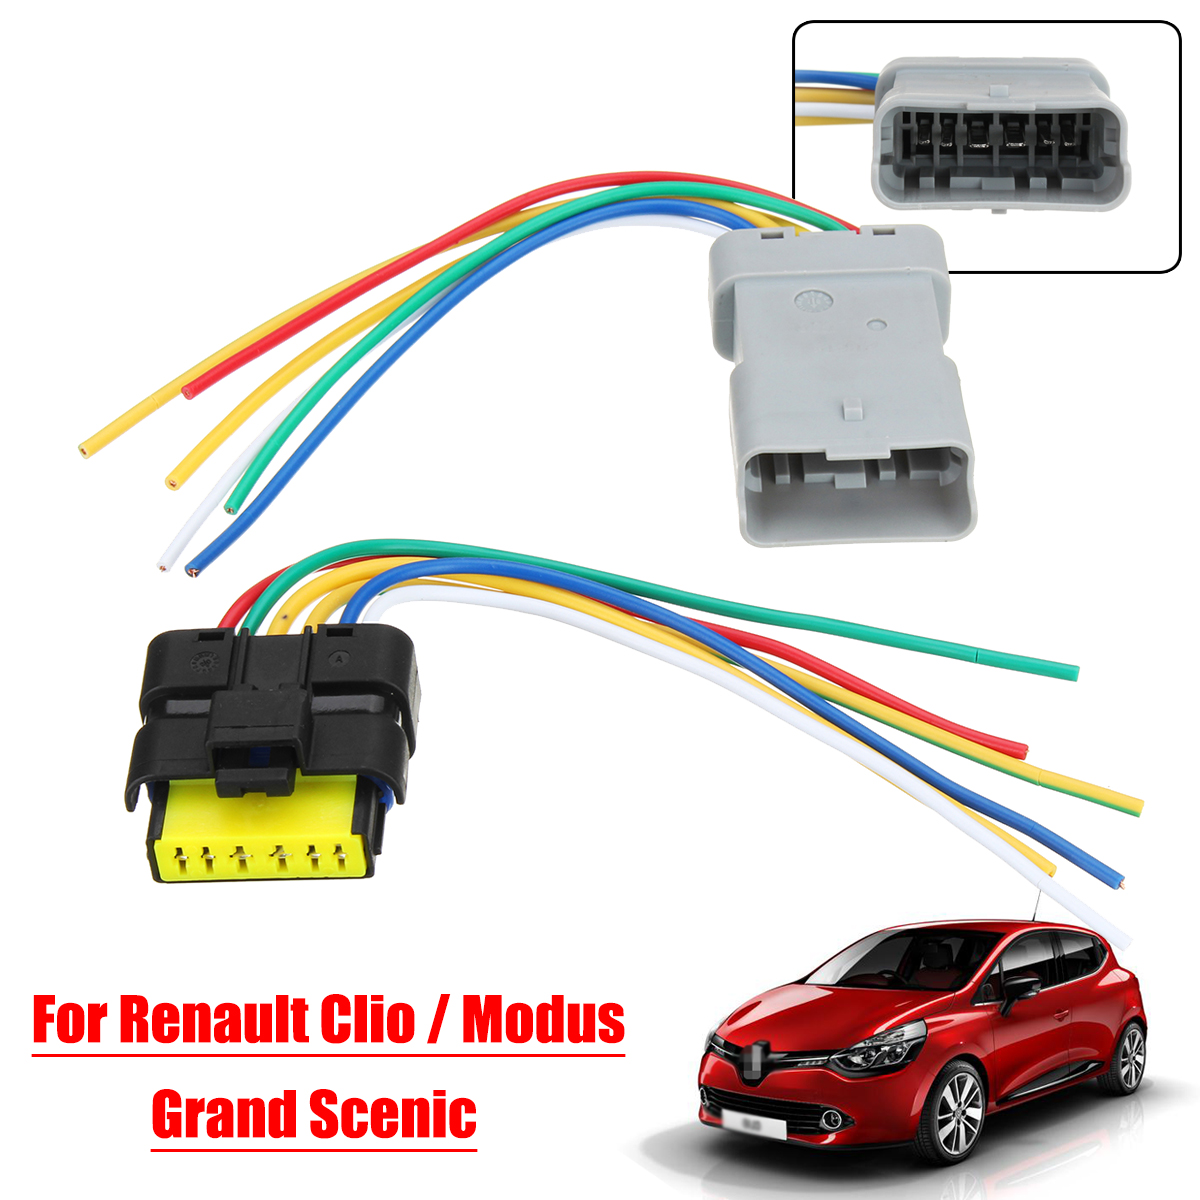 1set Window Module Wiring Ponytail Harness Plastic Plug For Renault Clio  Grand Scenic Modus